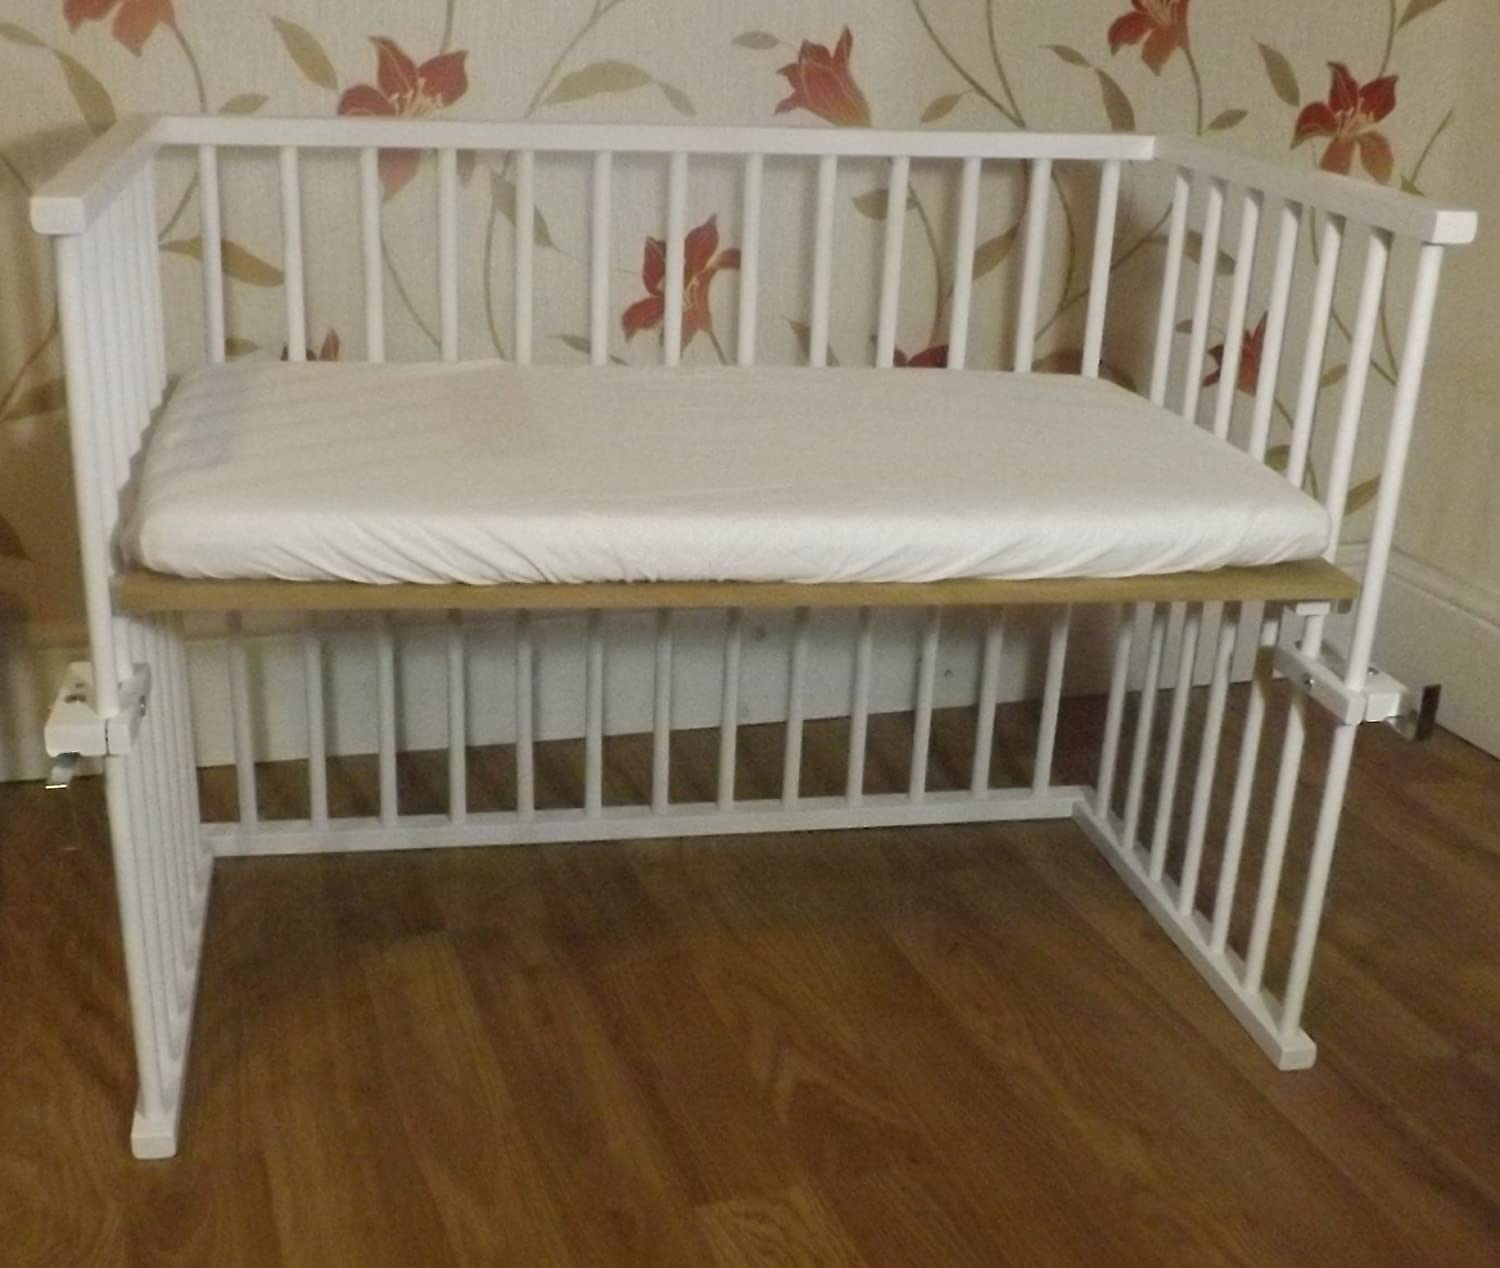 New Baby White Next to Mum Bedside crib Next to Bed Side by Side Crib Cot With Deluxe Breathable Mattress Different Position a b c